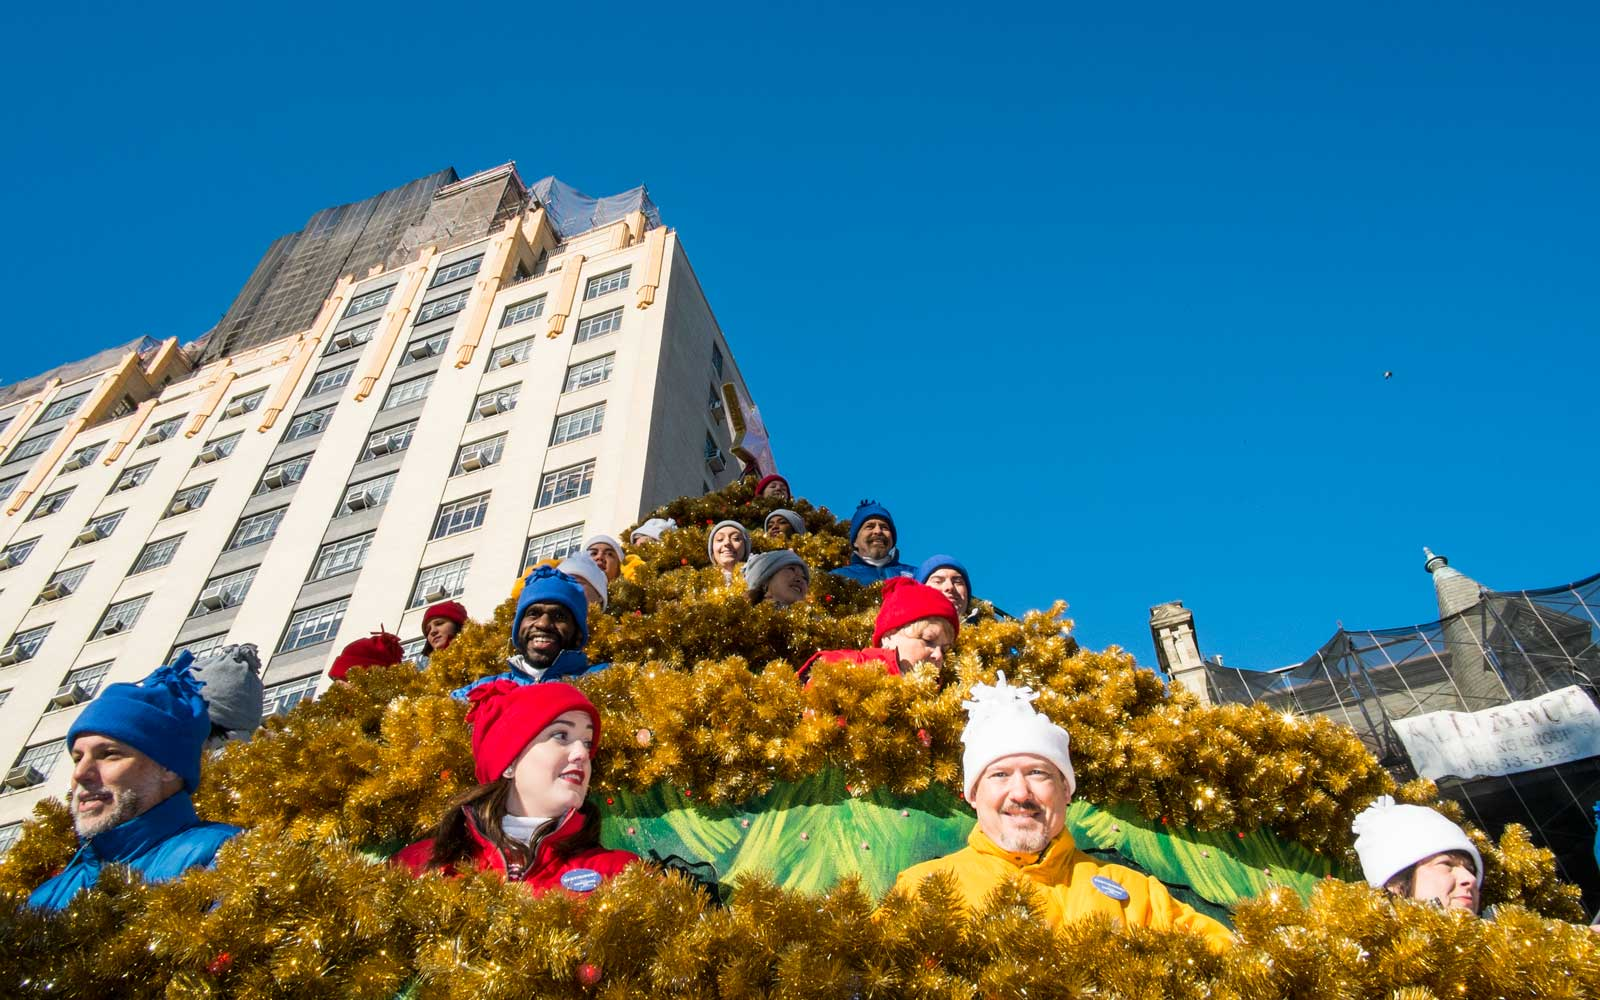 Behind the scenes of the Macy's Thanksgiving Day Parade